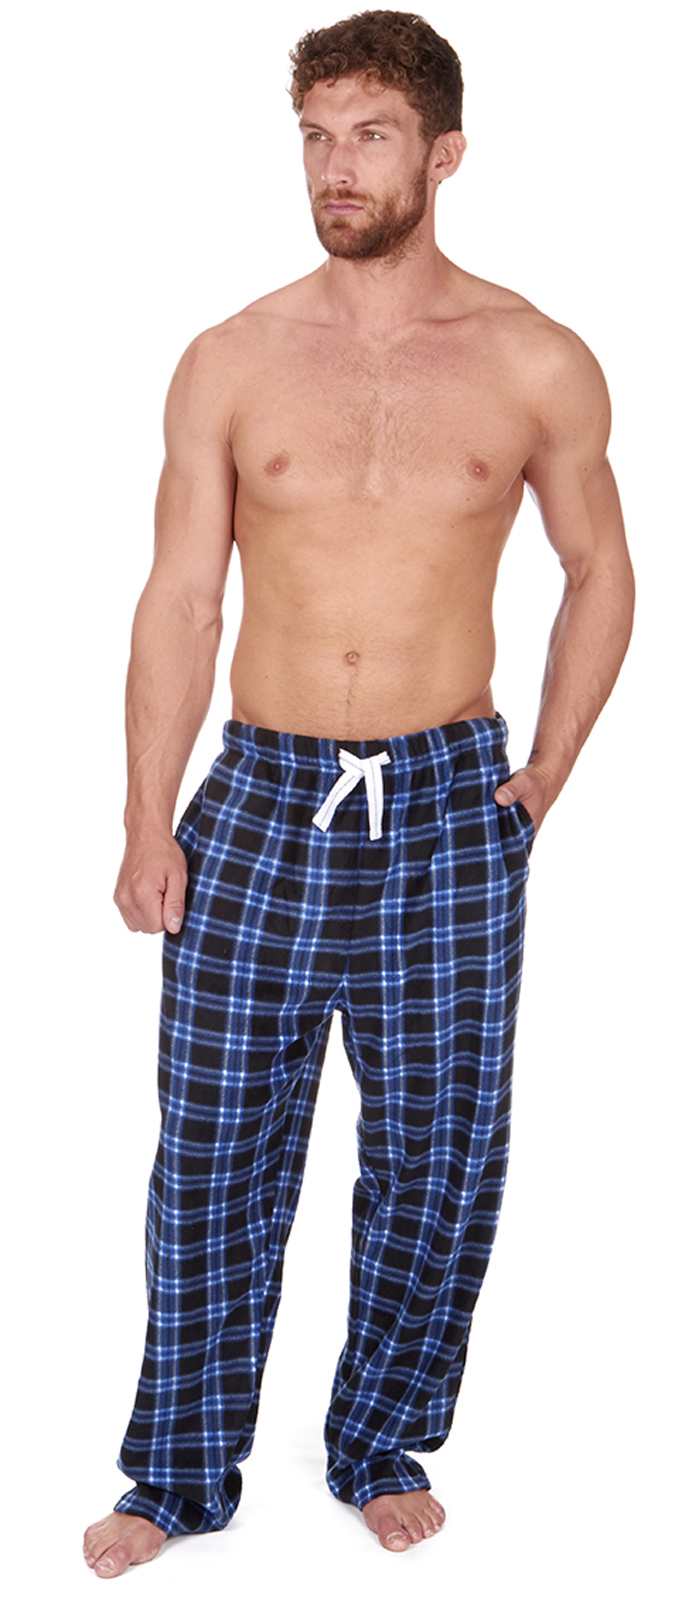 Get ready for bed in comfort and style! Shop Hudson's Bay for men's pajamas, robes & slippers by Calvin Klein, Tommy Hilfiger and more. to Get free shipping on orders $99 or more.